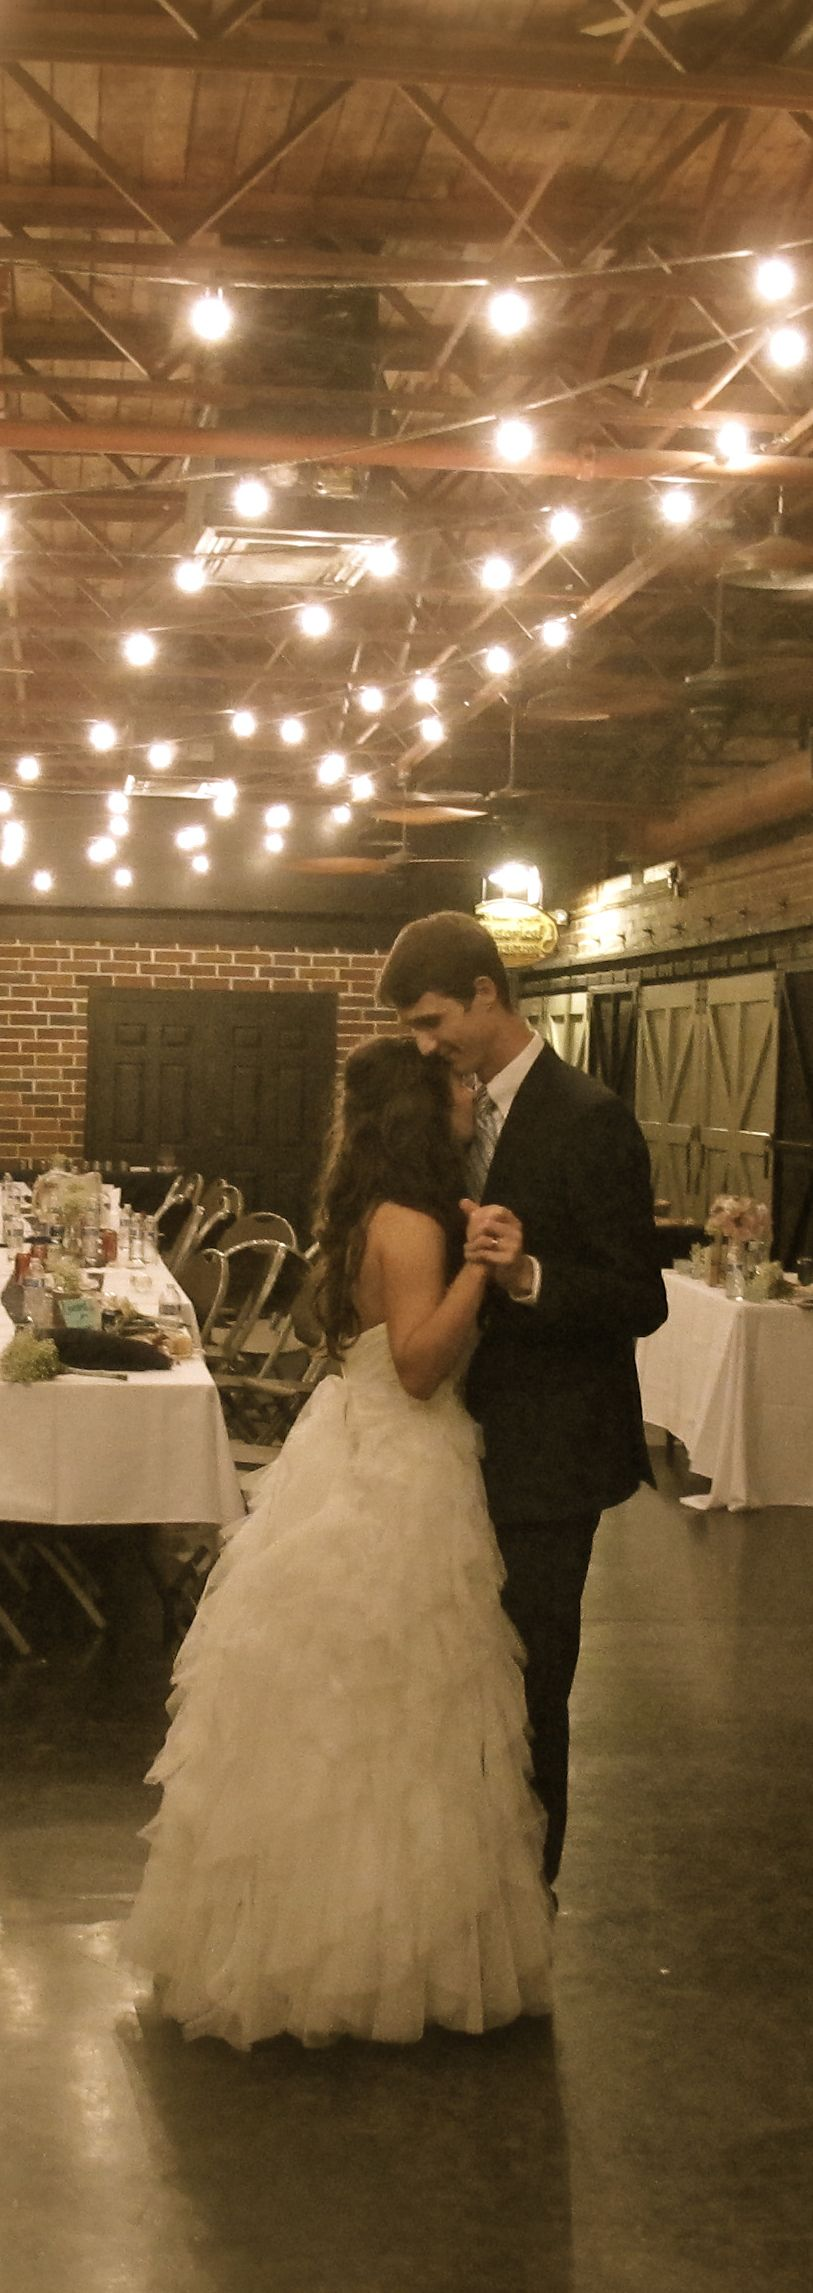 A Bride And Groom Celebrate Private Dance At Their Reception How Will Orlando Wedding DJs Help You Your Special Night